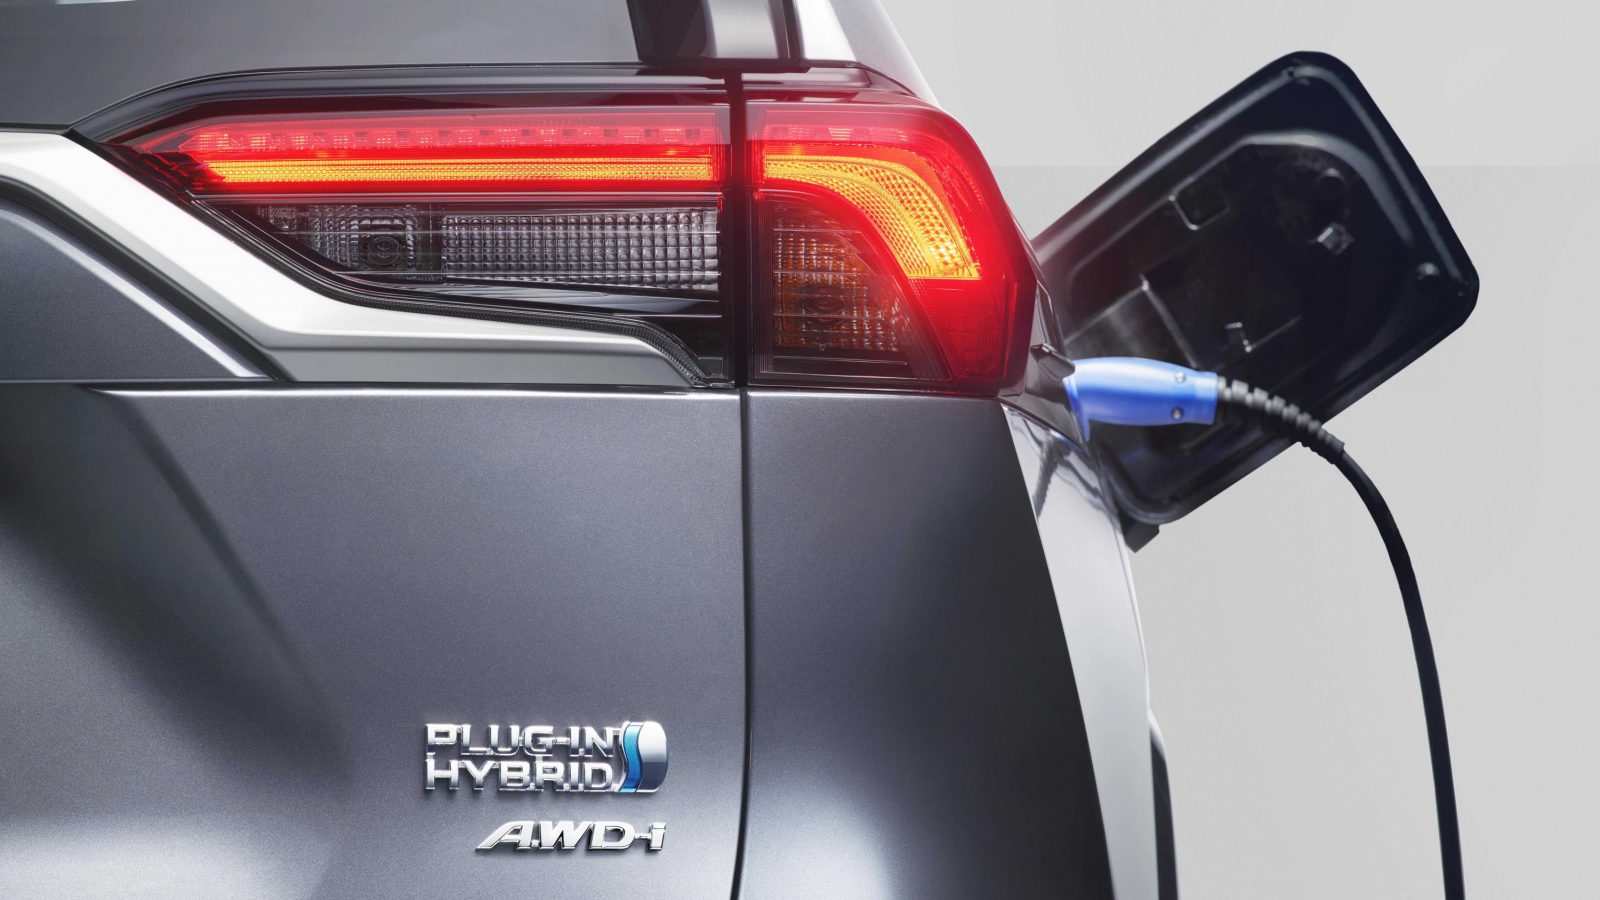 Toyota RAV4 Plug-in Hybrid - detail of charging point and rear badge